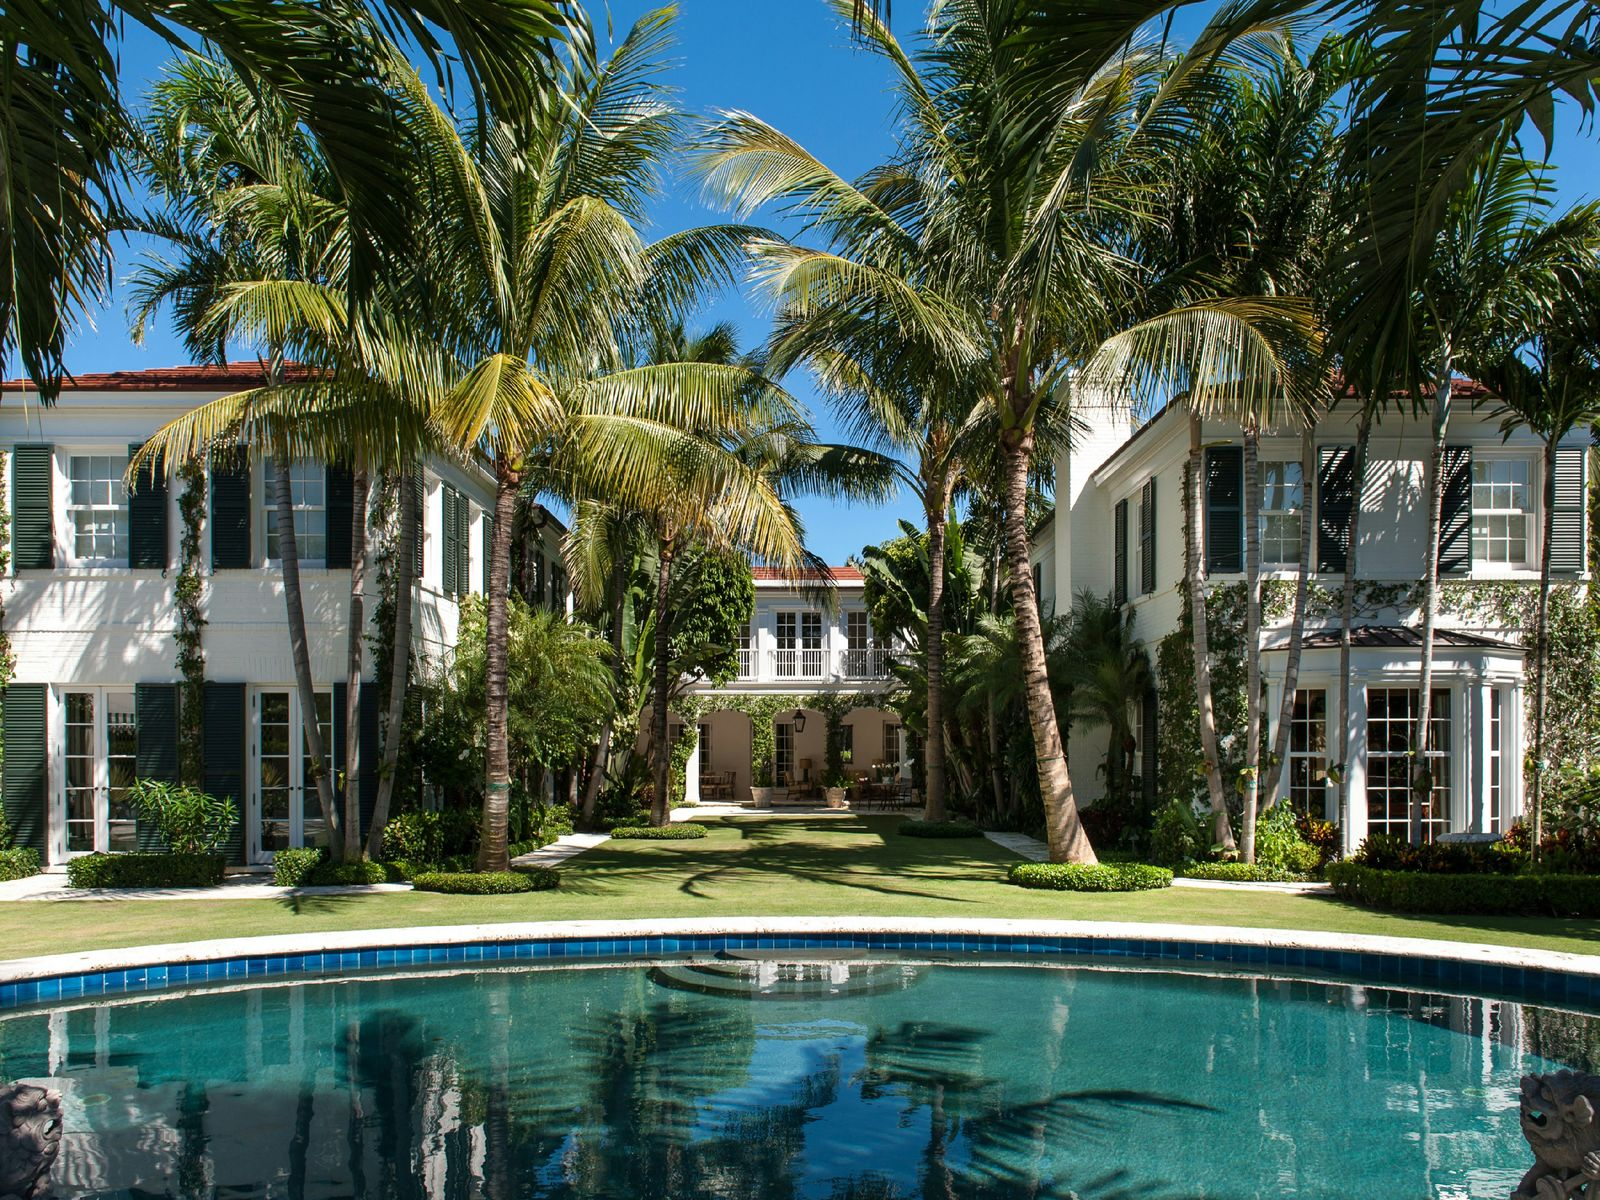 Oceanfront Estate, Palm Beach FL Single Family Home - Palm Beach Real Estate